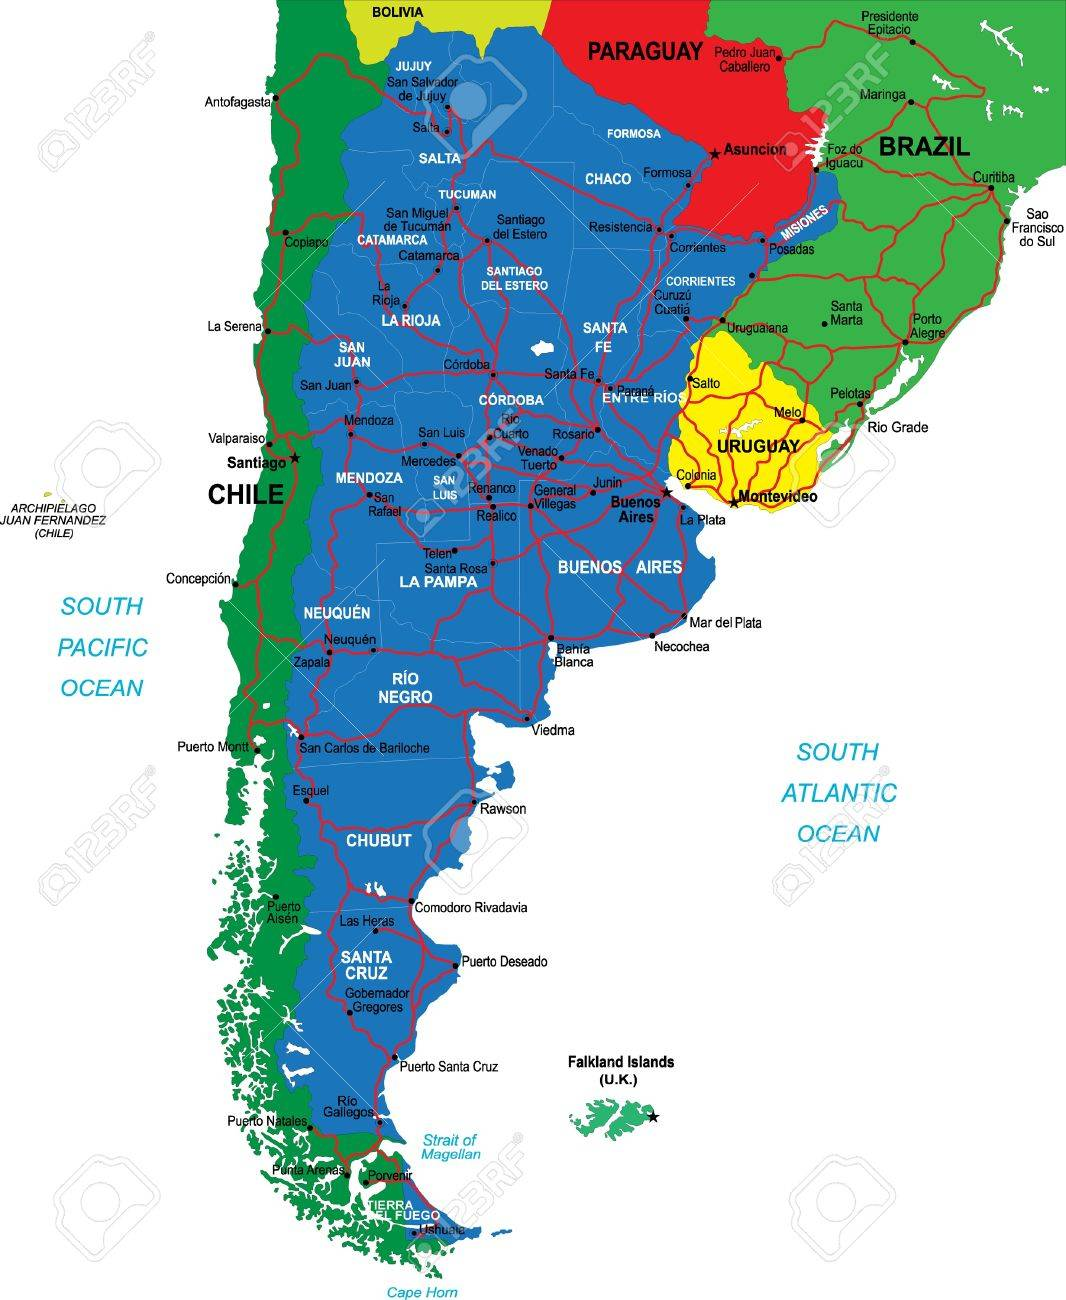 Argentina Map Royalty Free Cliparts Vectors And Stock - Argentina chile map